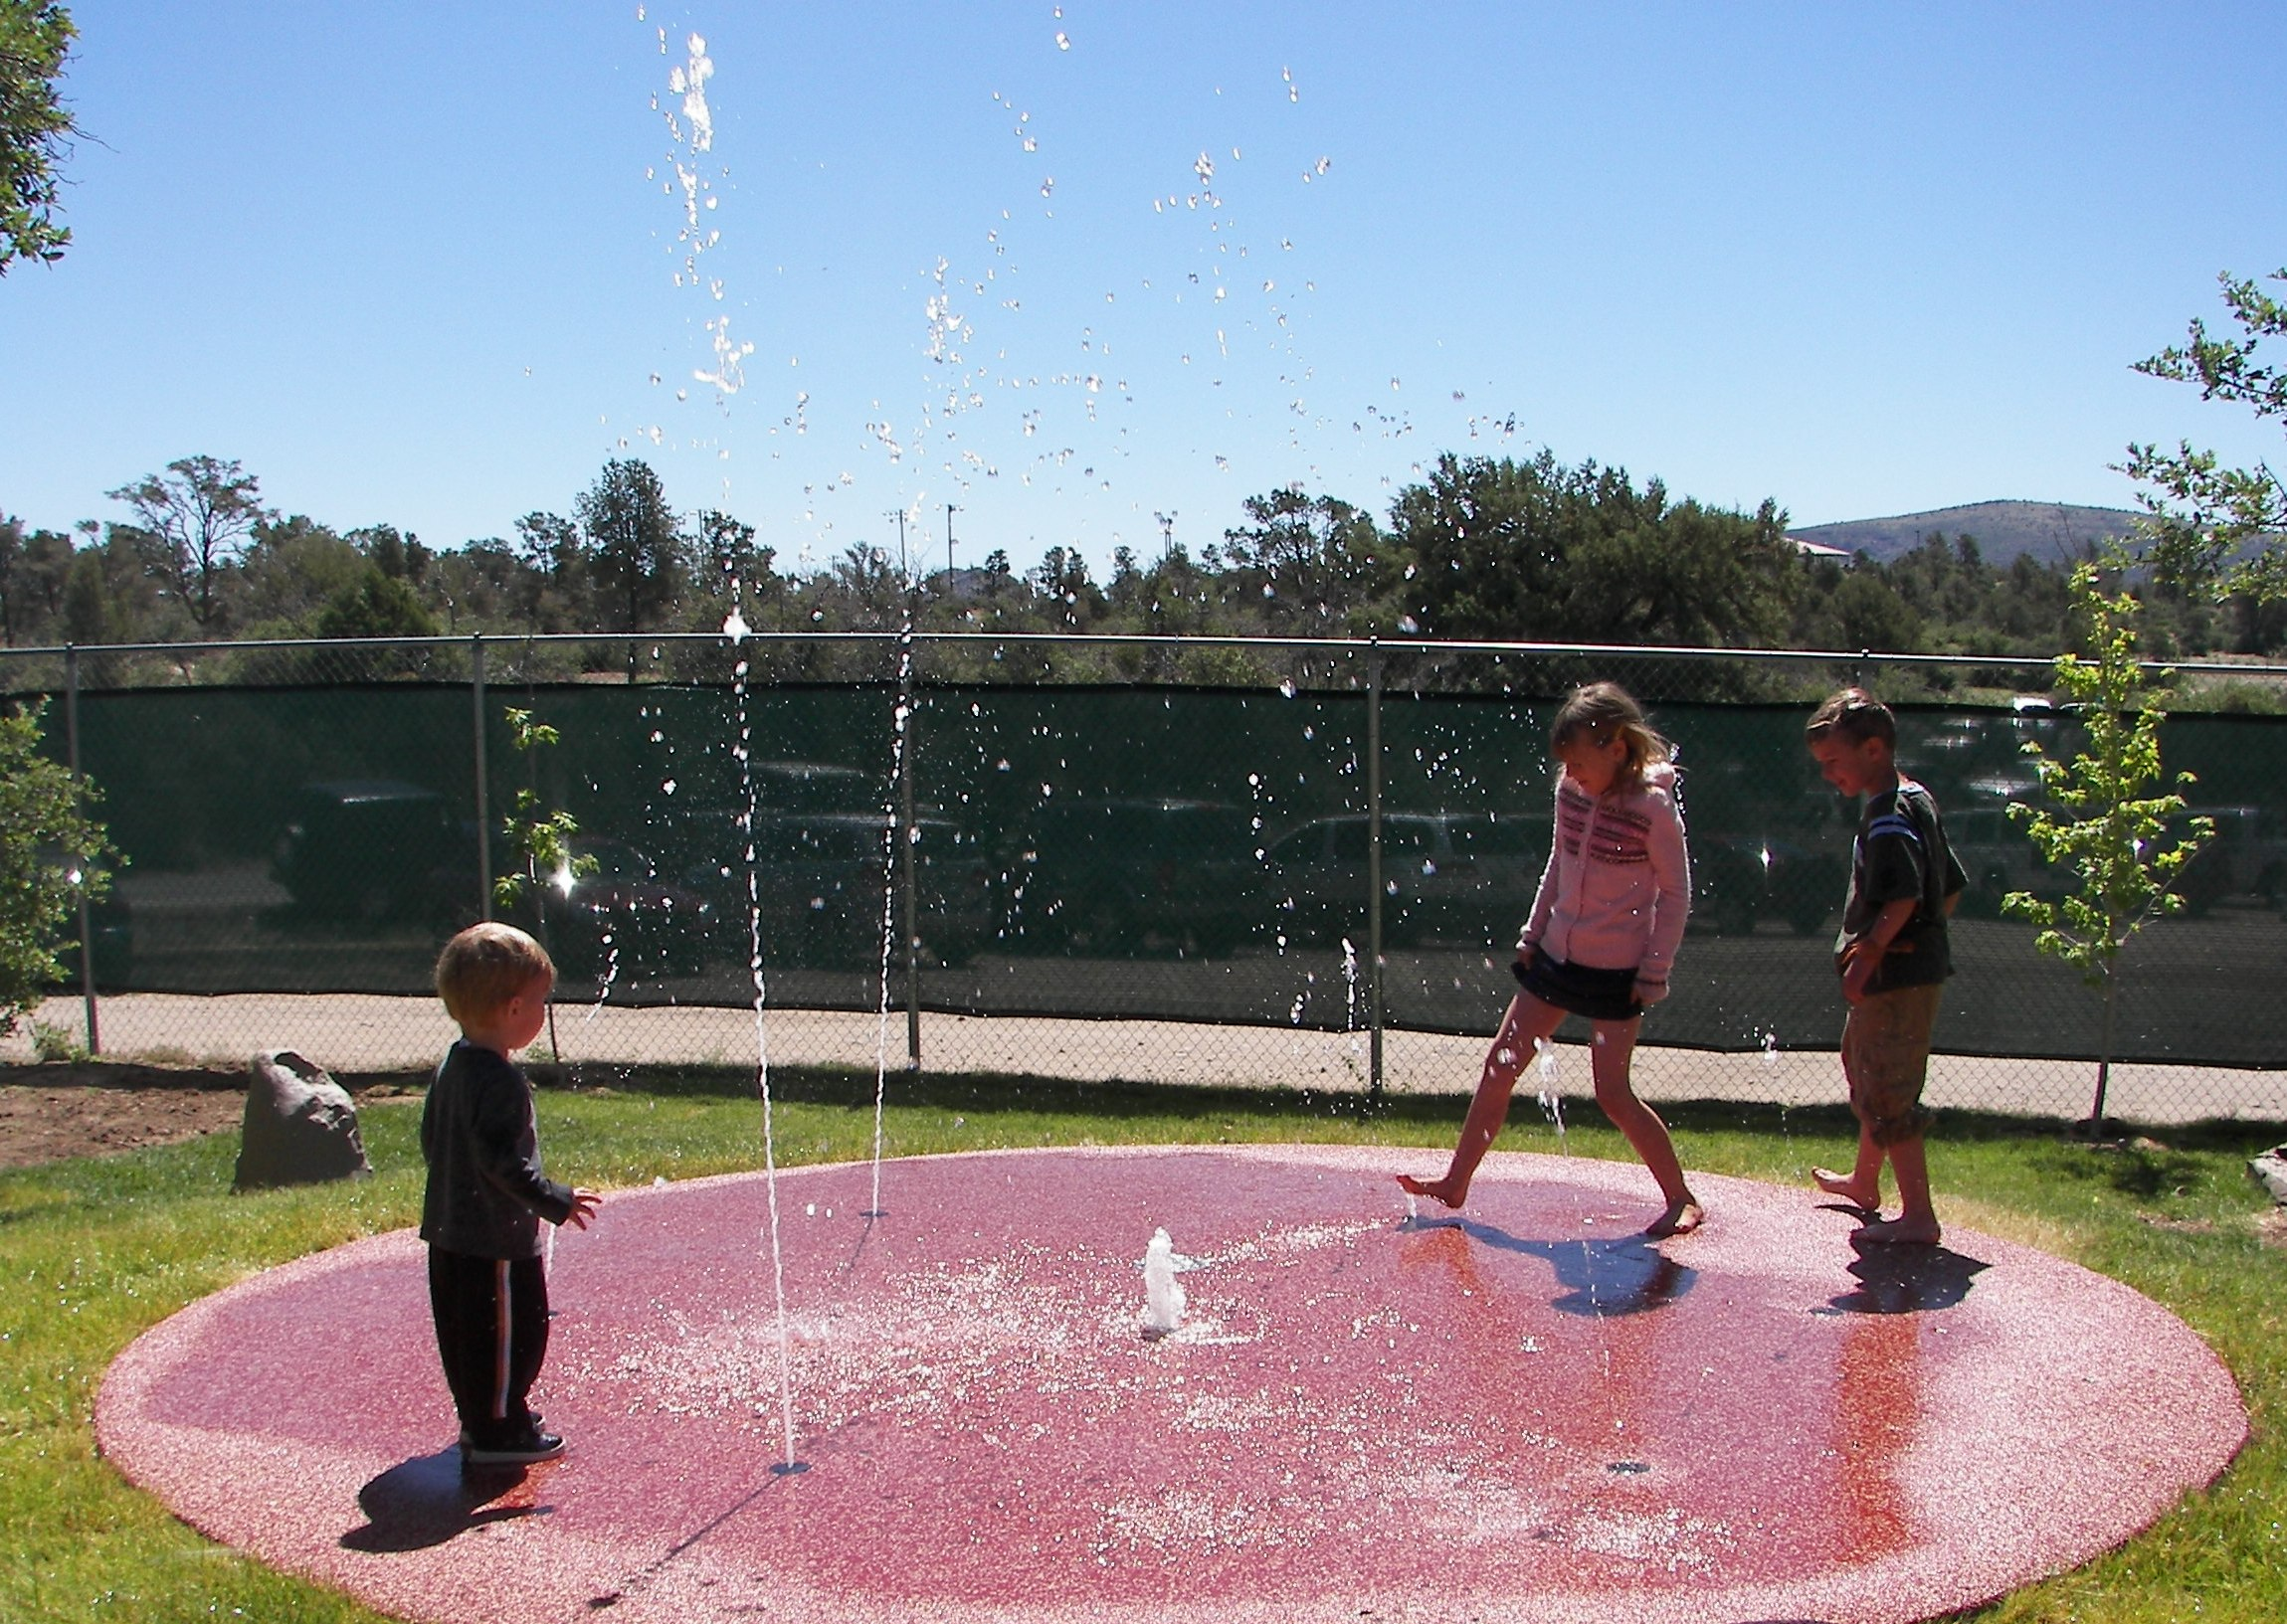 kids playing-event center-splash pad -free day june 2010 002